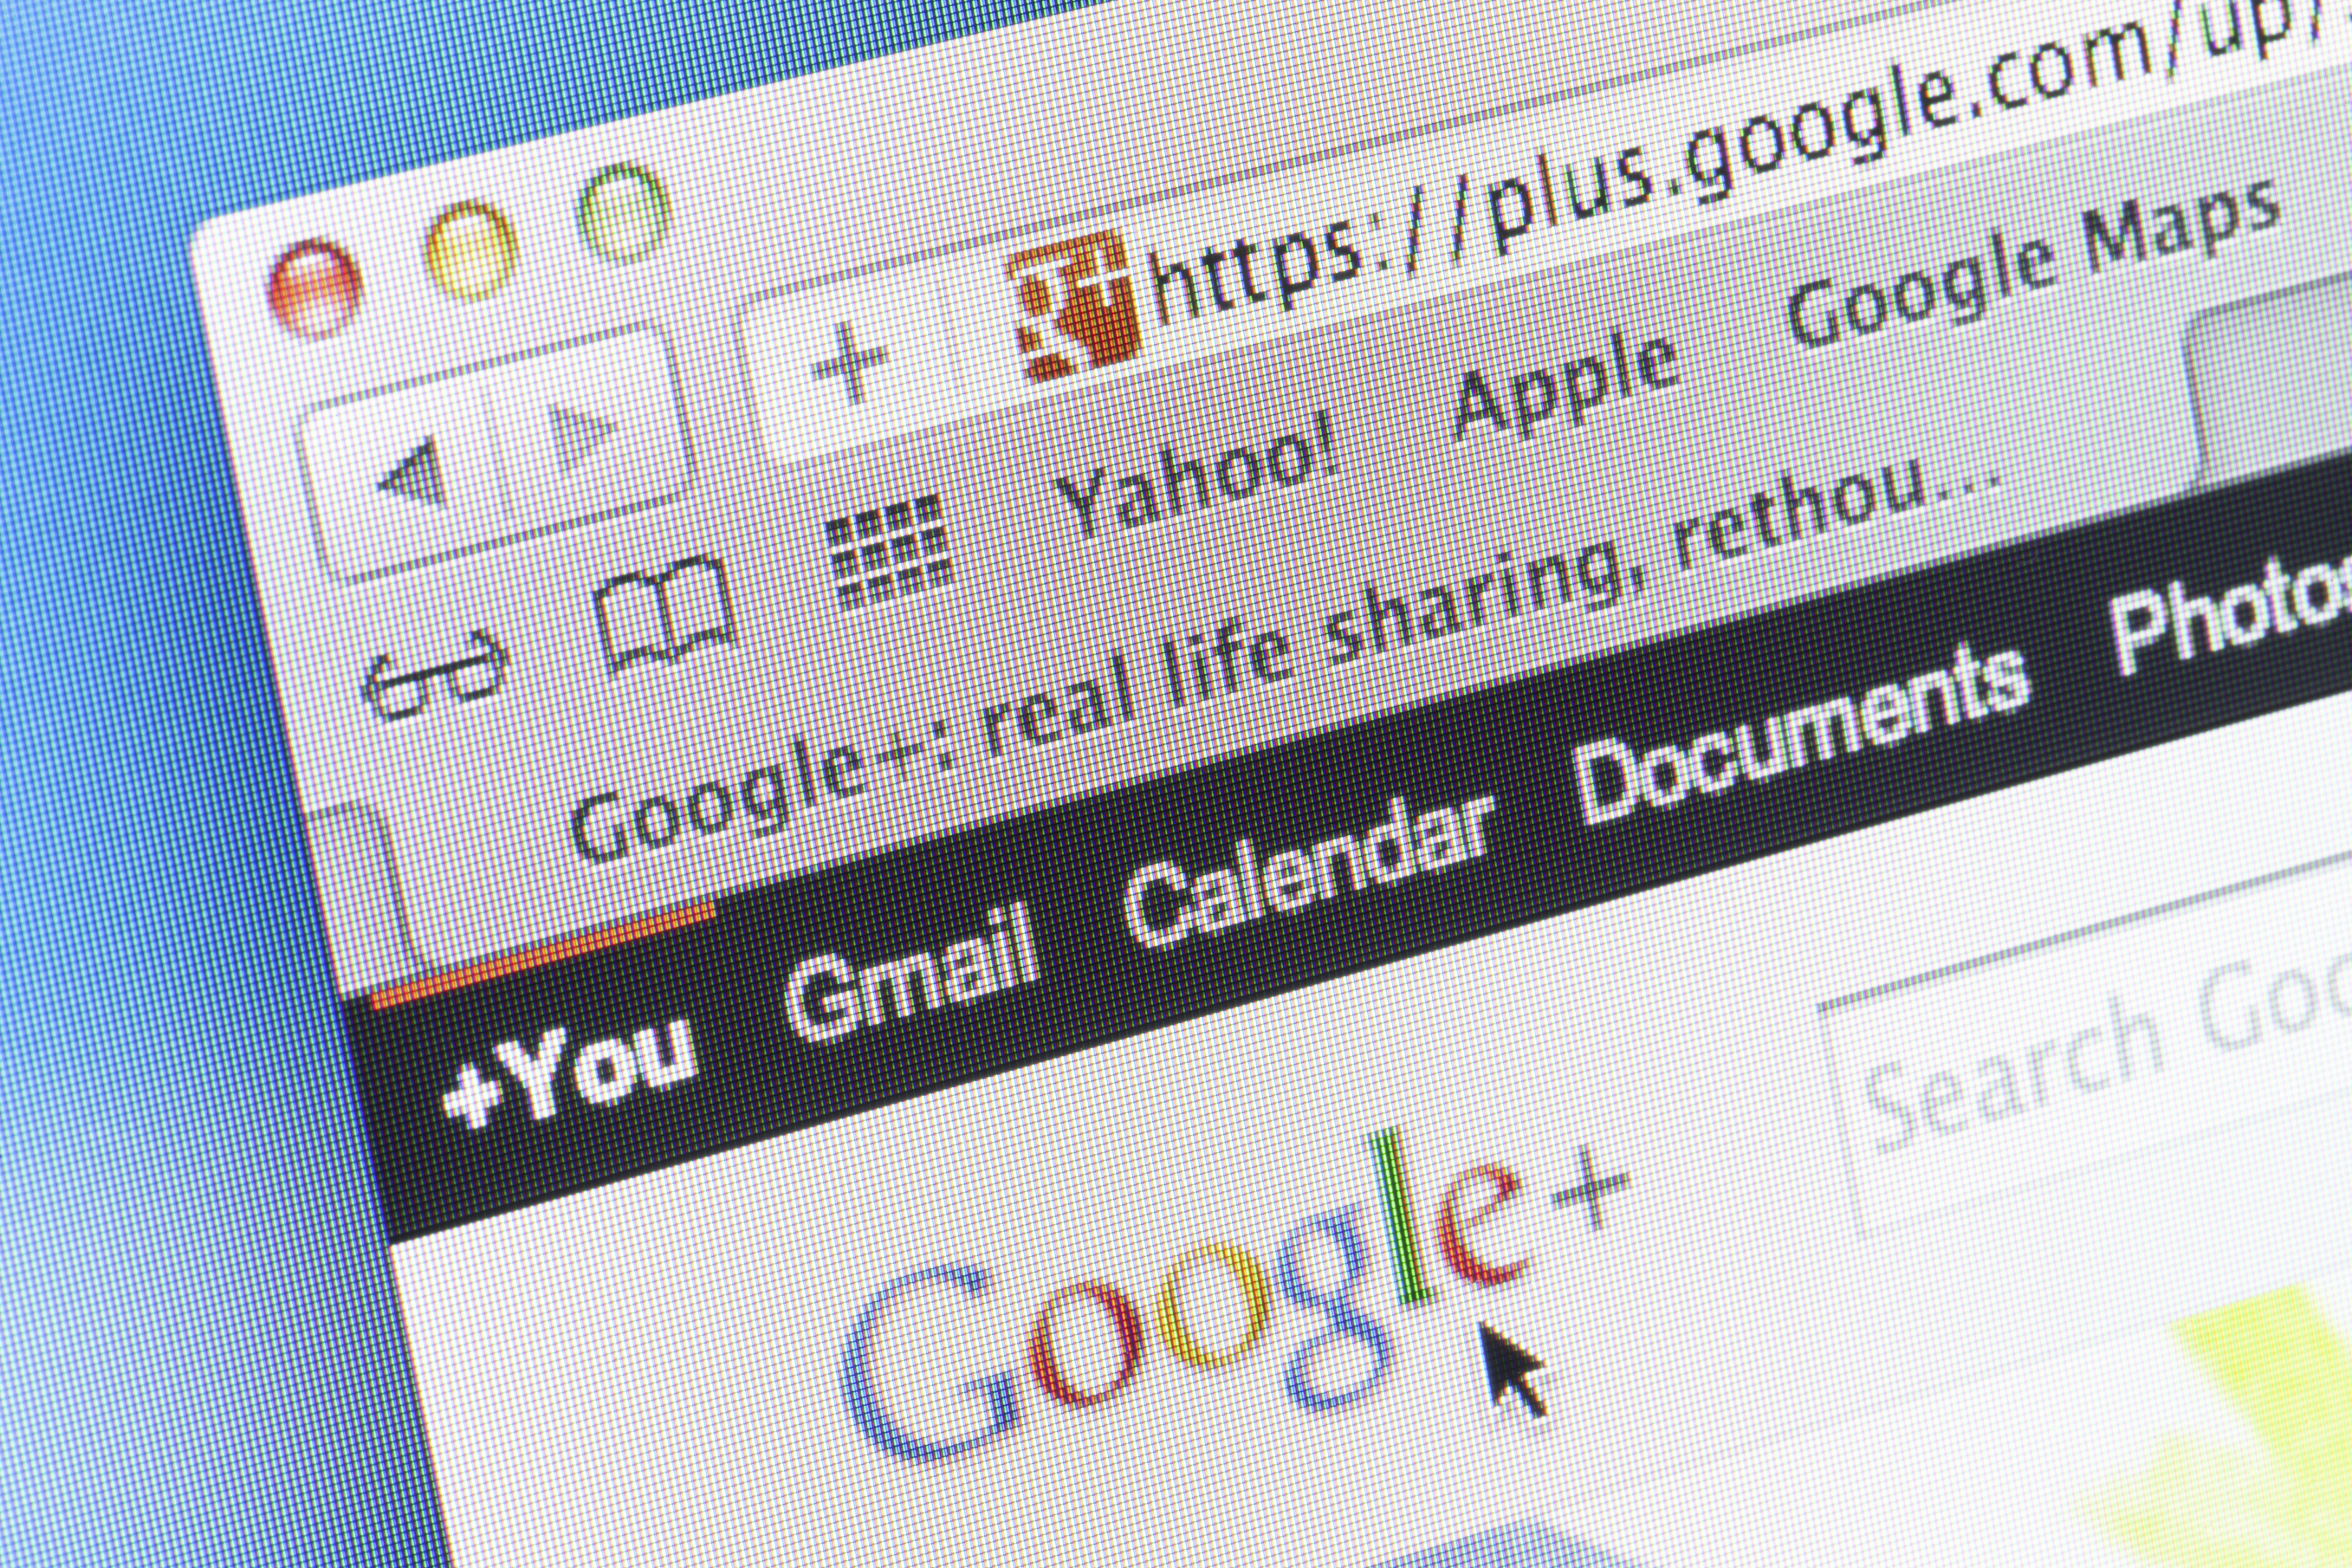 Will the Updated Google+ Be a Boon for Businesses?